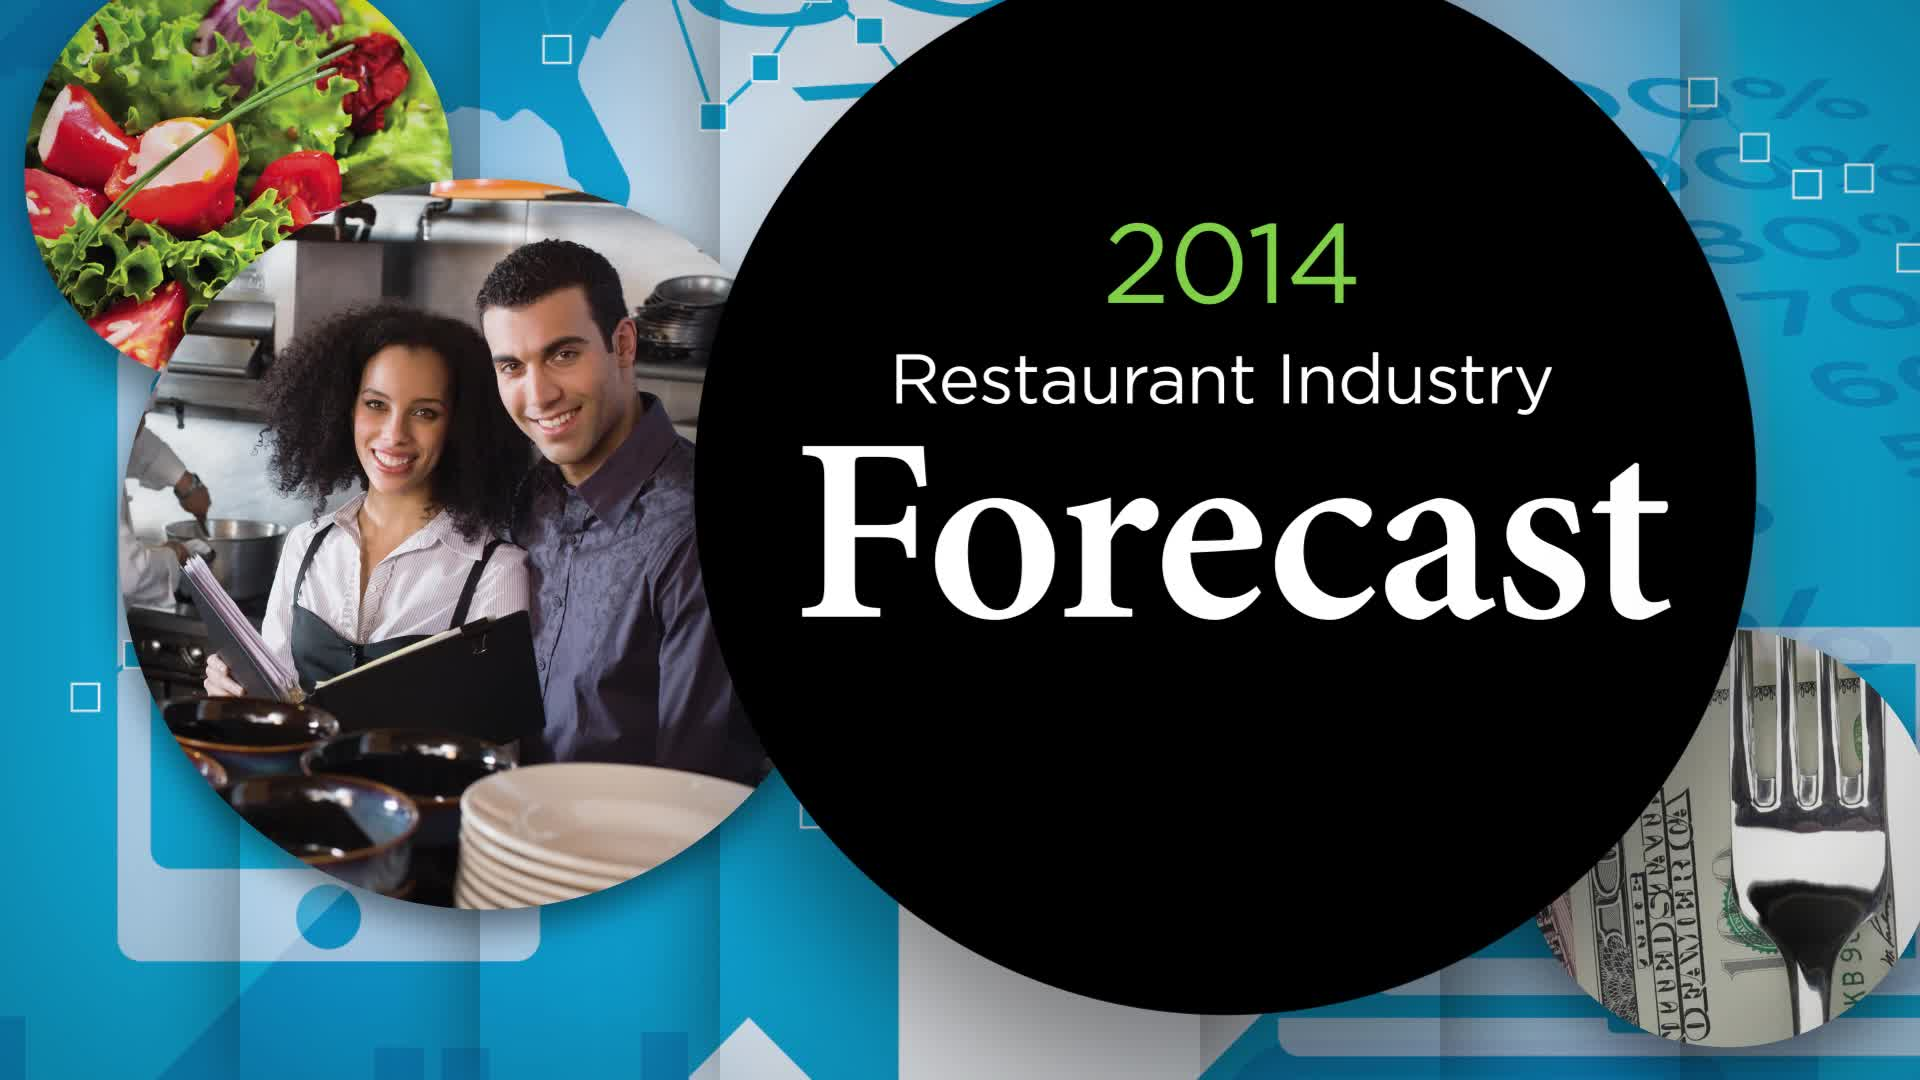 The National Restaurant Association's 2014 Restaurant Industry Forecast explores how consumers choose where to dine and other consumer trends. Visit http://www.restaurant.org/forecast for more information.